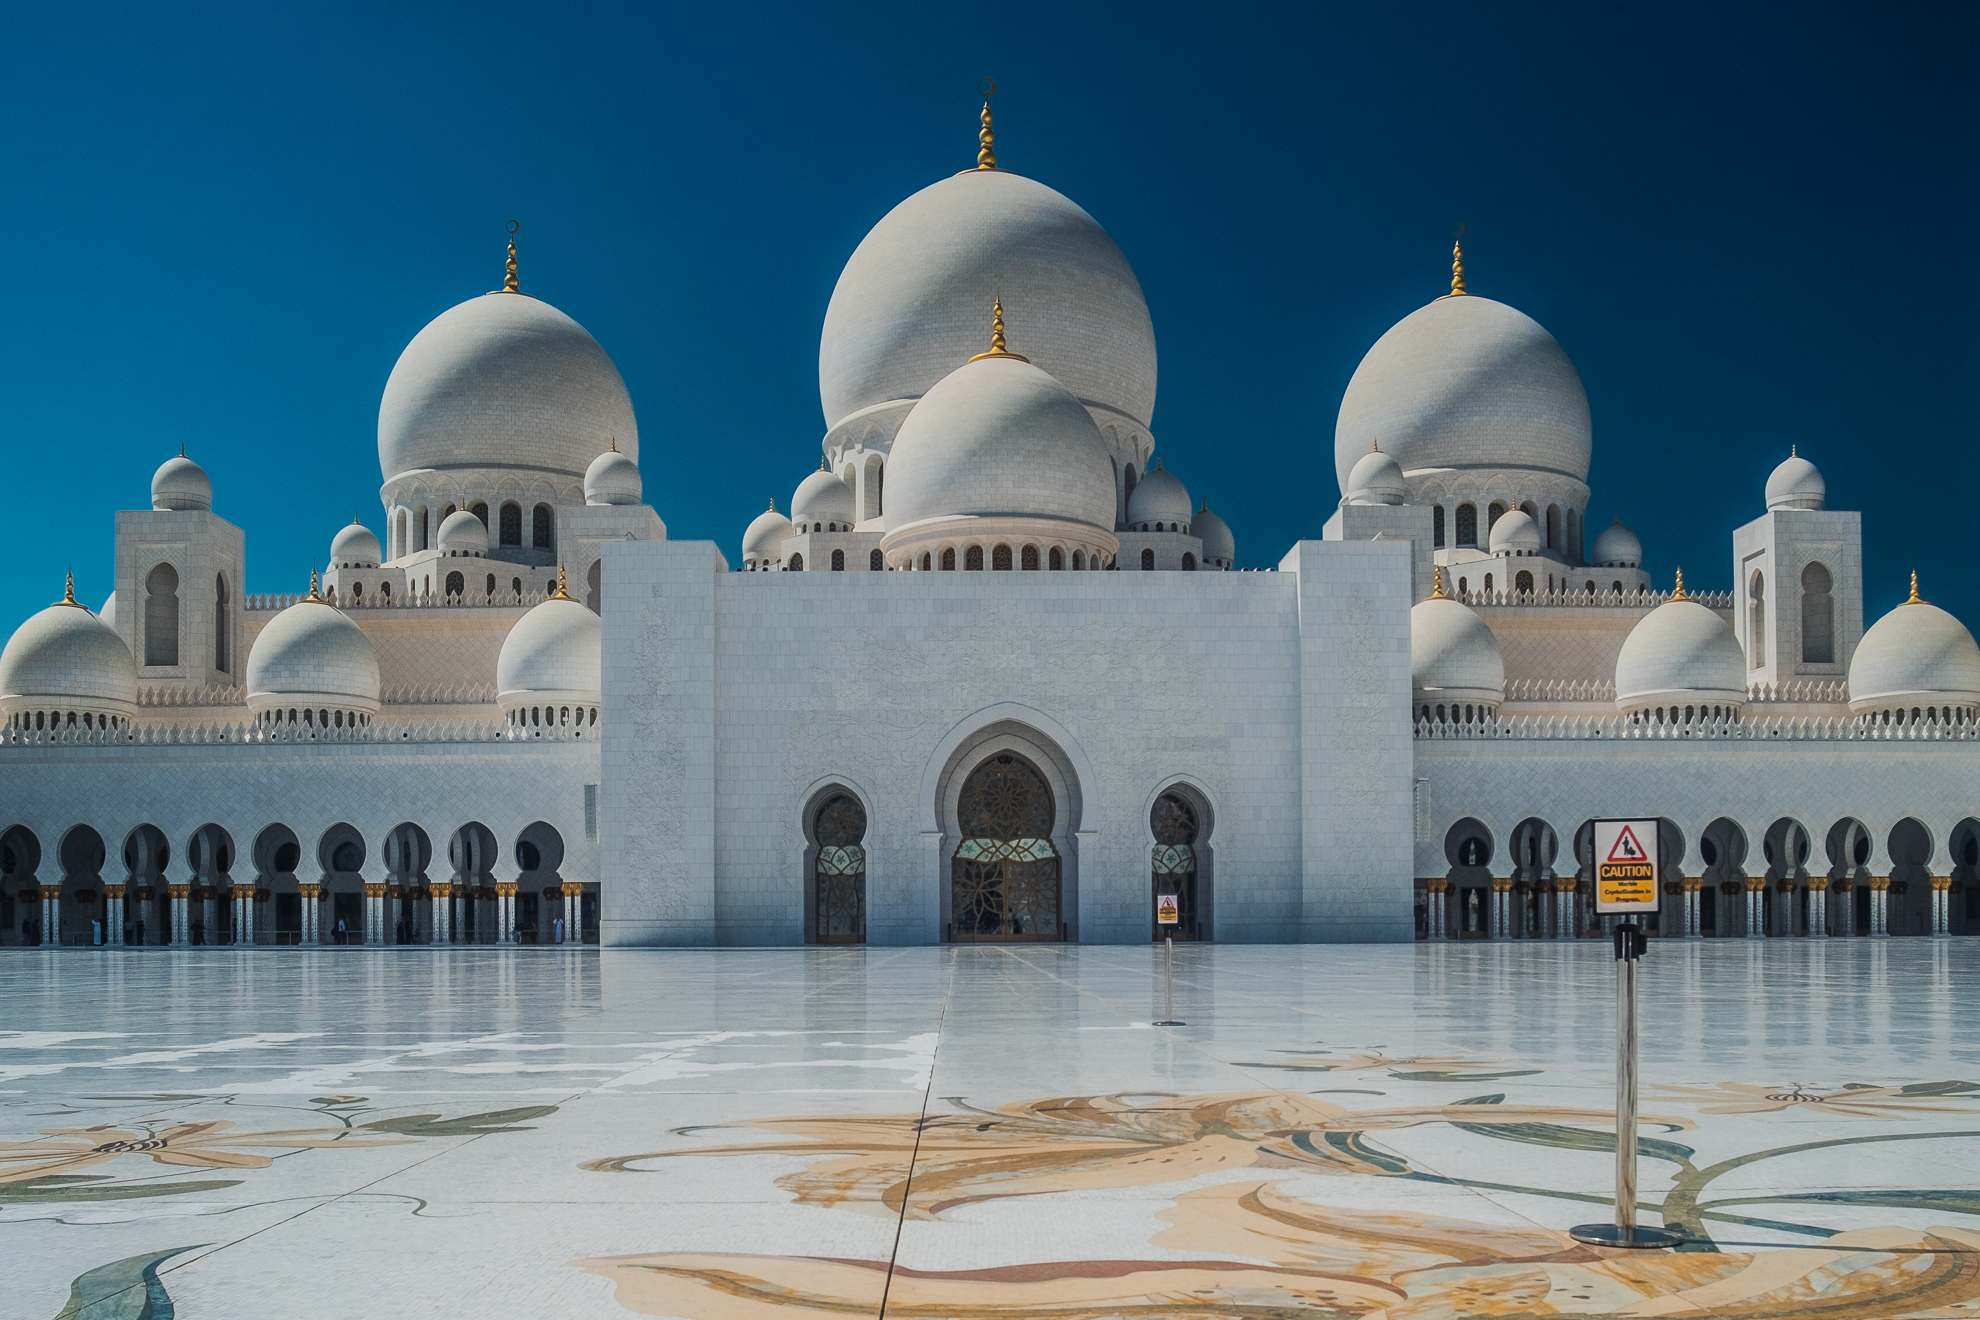 sheikh zayed grand mosque7 Picturesque Sheikh Zayed Grand Mosque in Abu Dhabi